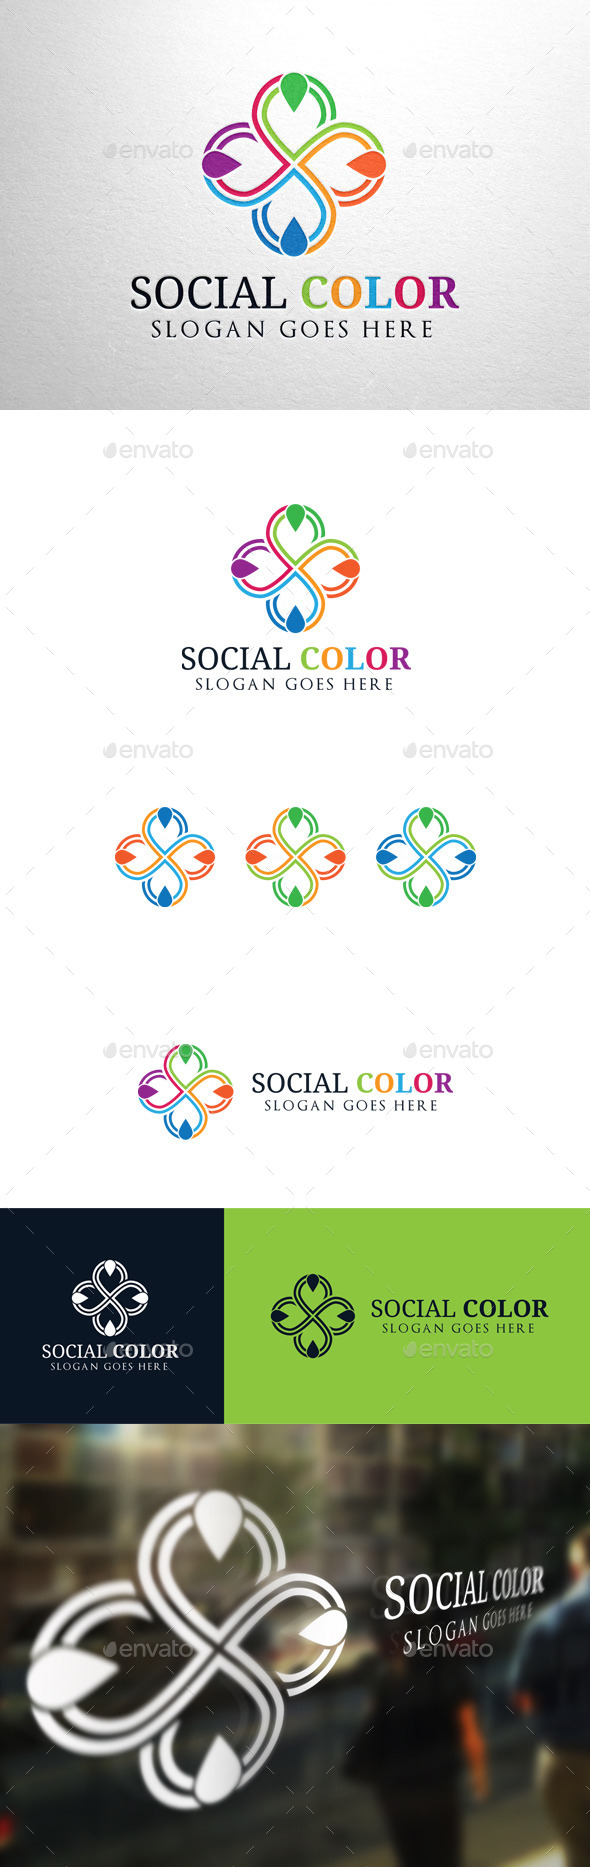 GraphicRiver Social Color Logo 11063236